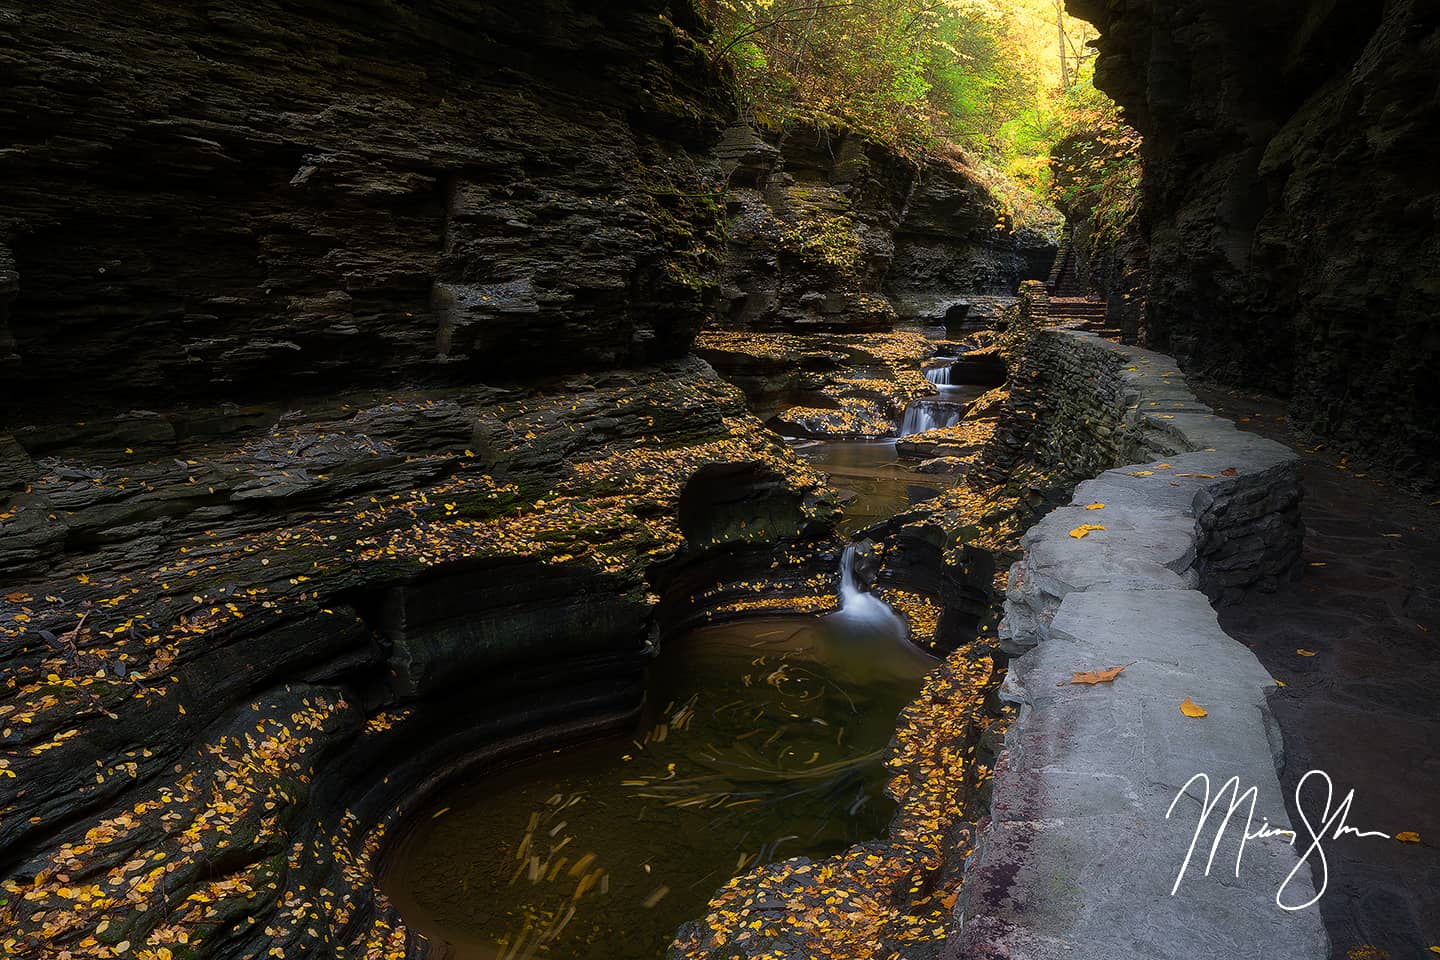 Open edition fine art print of Autumn in Spiral Gorge at Watkins Glen from Mickey Shannon Photography. Location: Watkins Glen State Park, NY